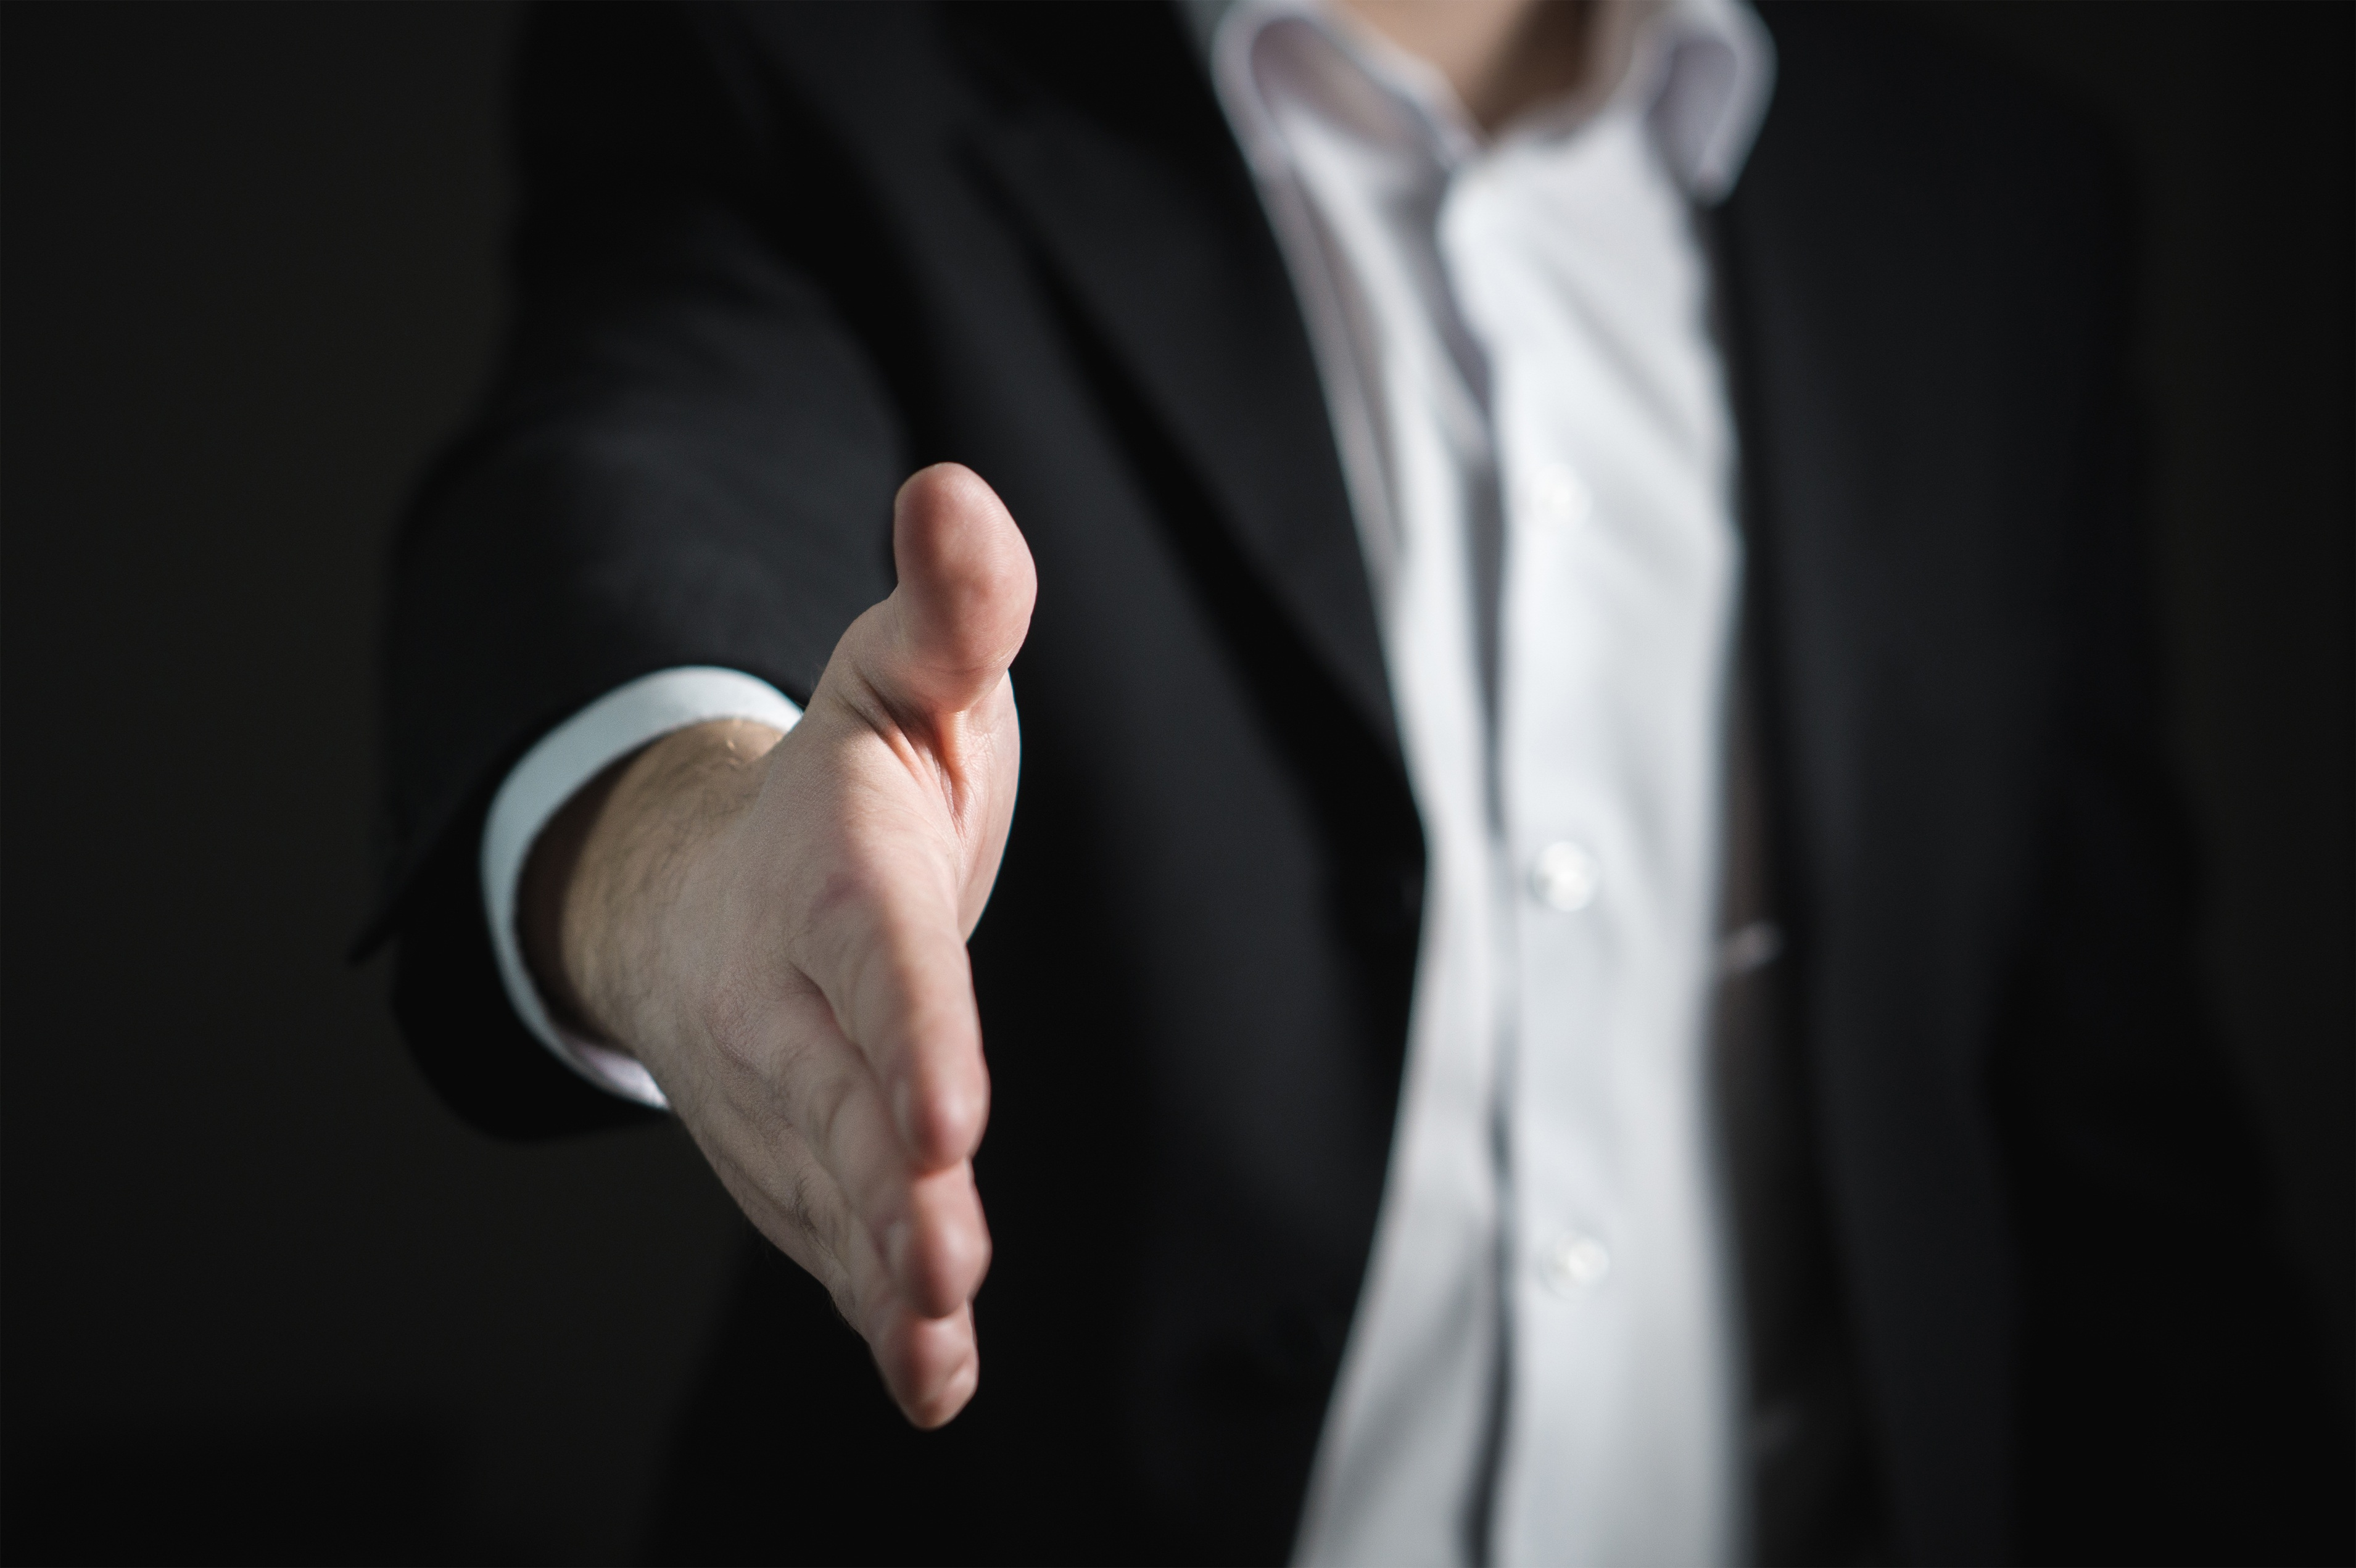 Picture of a close-up hand shake by a man